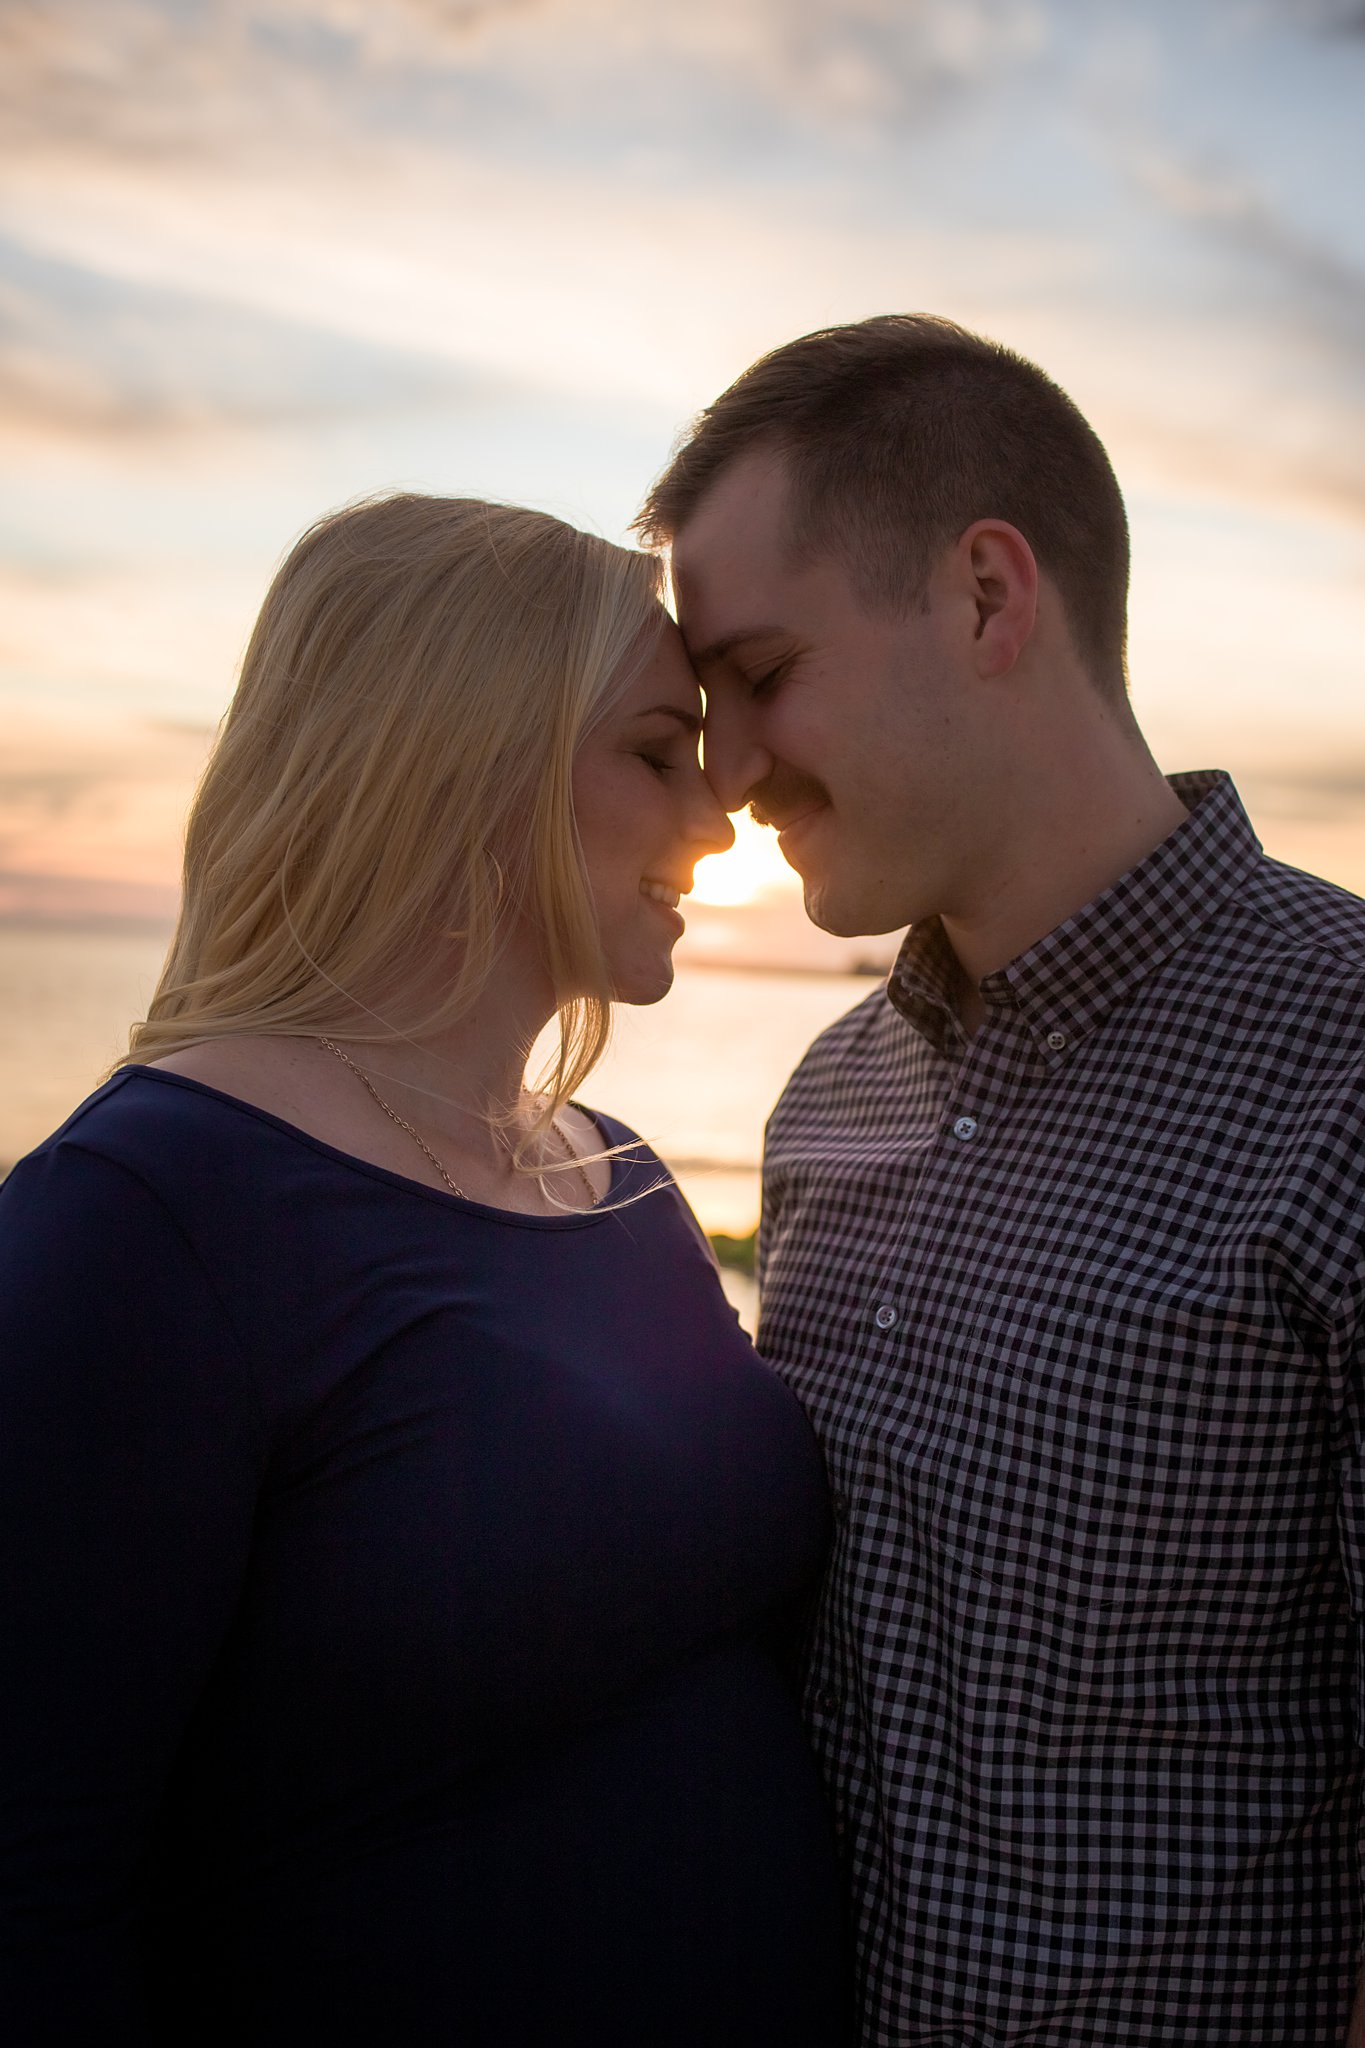 golden hour sunset maternity photography